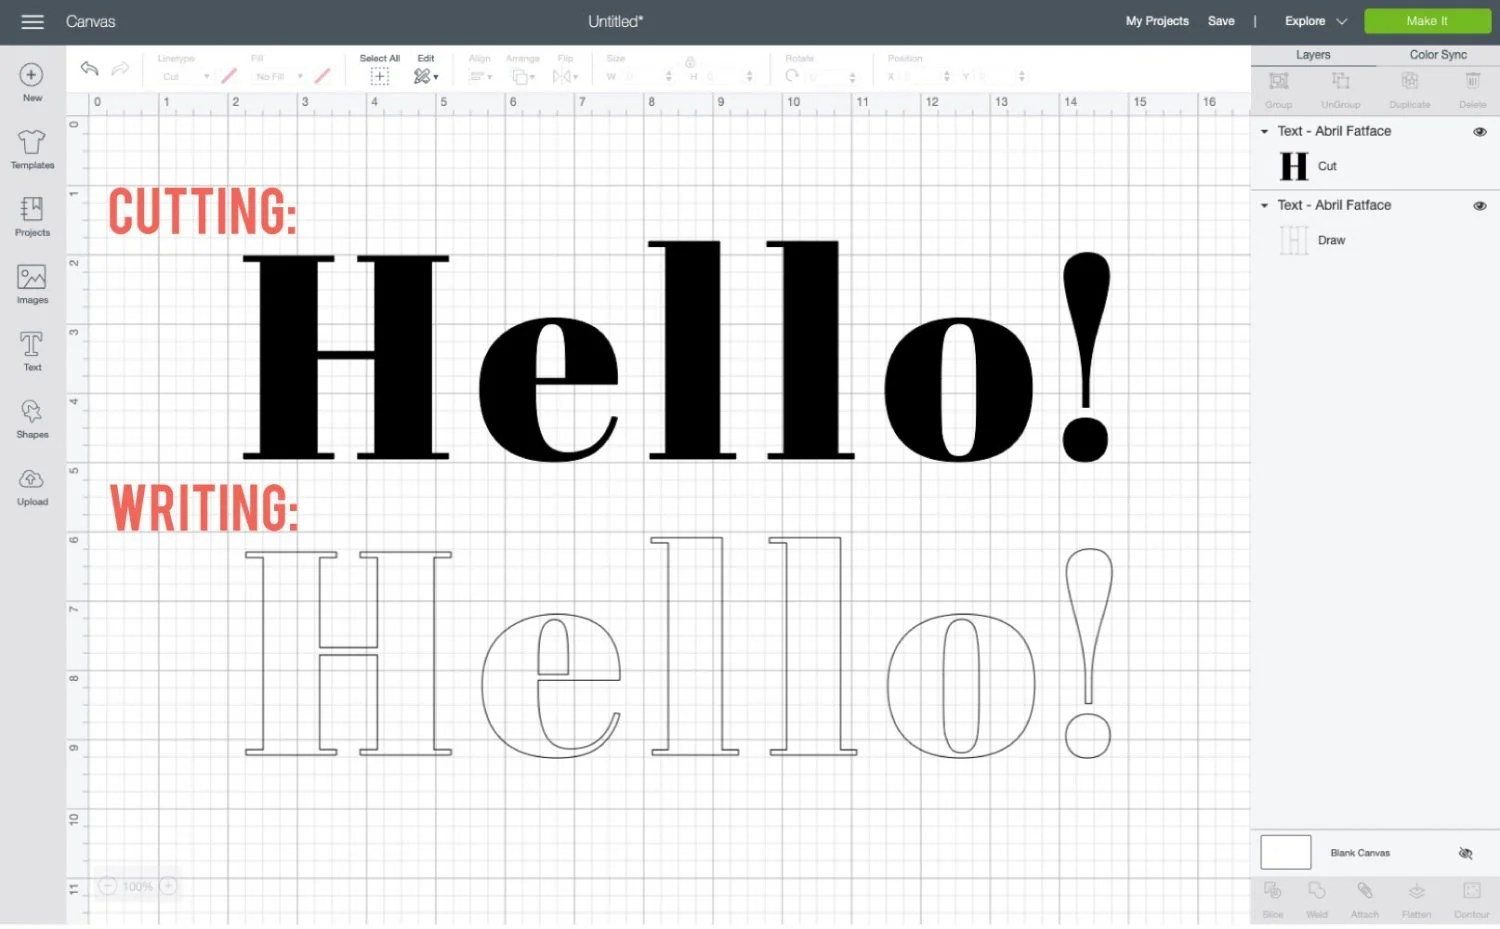 Comparison of Abril Fatface font cutting and writing in Design Space